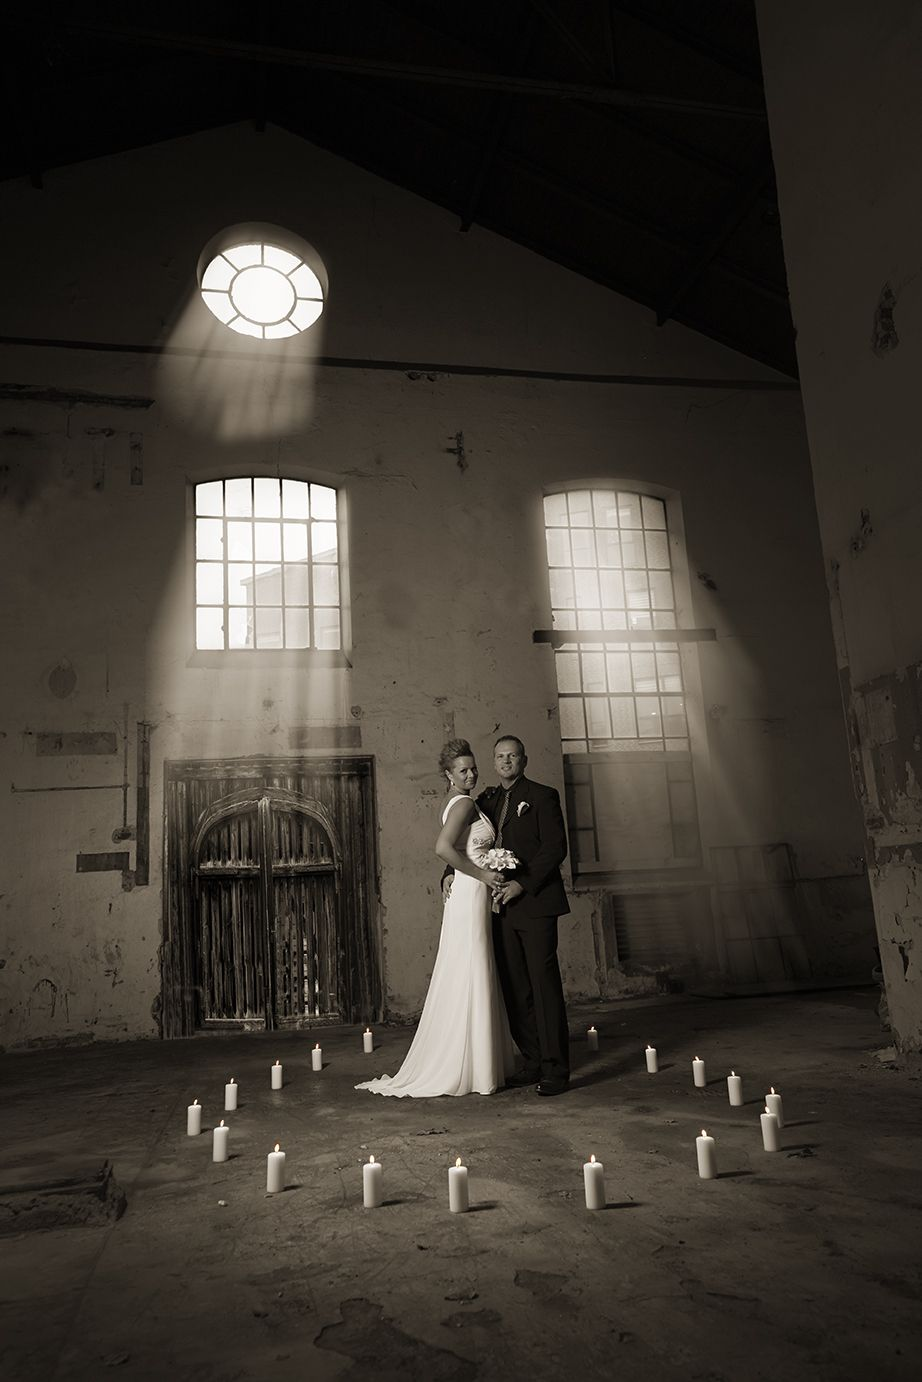 wedding photography by photographer Pernille Bering